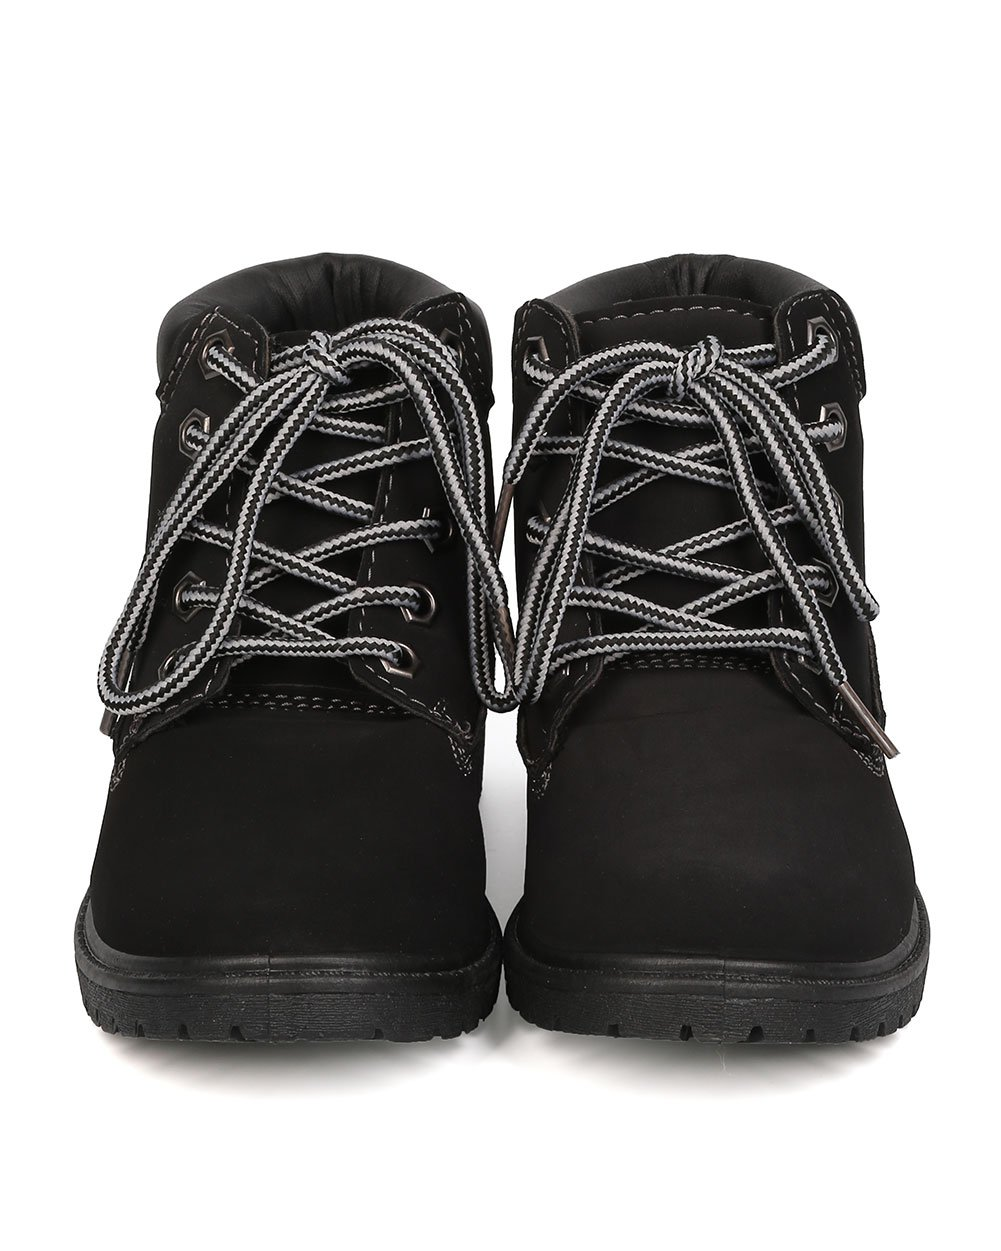 Nubuck Round Toe Lace Up Lug Sole All Weather Ankle Boot (Toddler/Little Girl/Big Girl) FA28 - Black (Size: Toddler 9) by Refresh (Image #4)